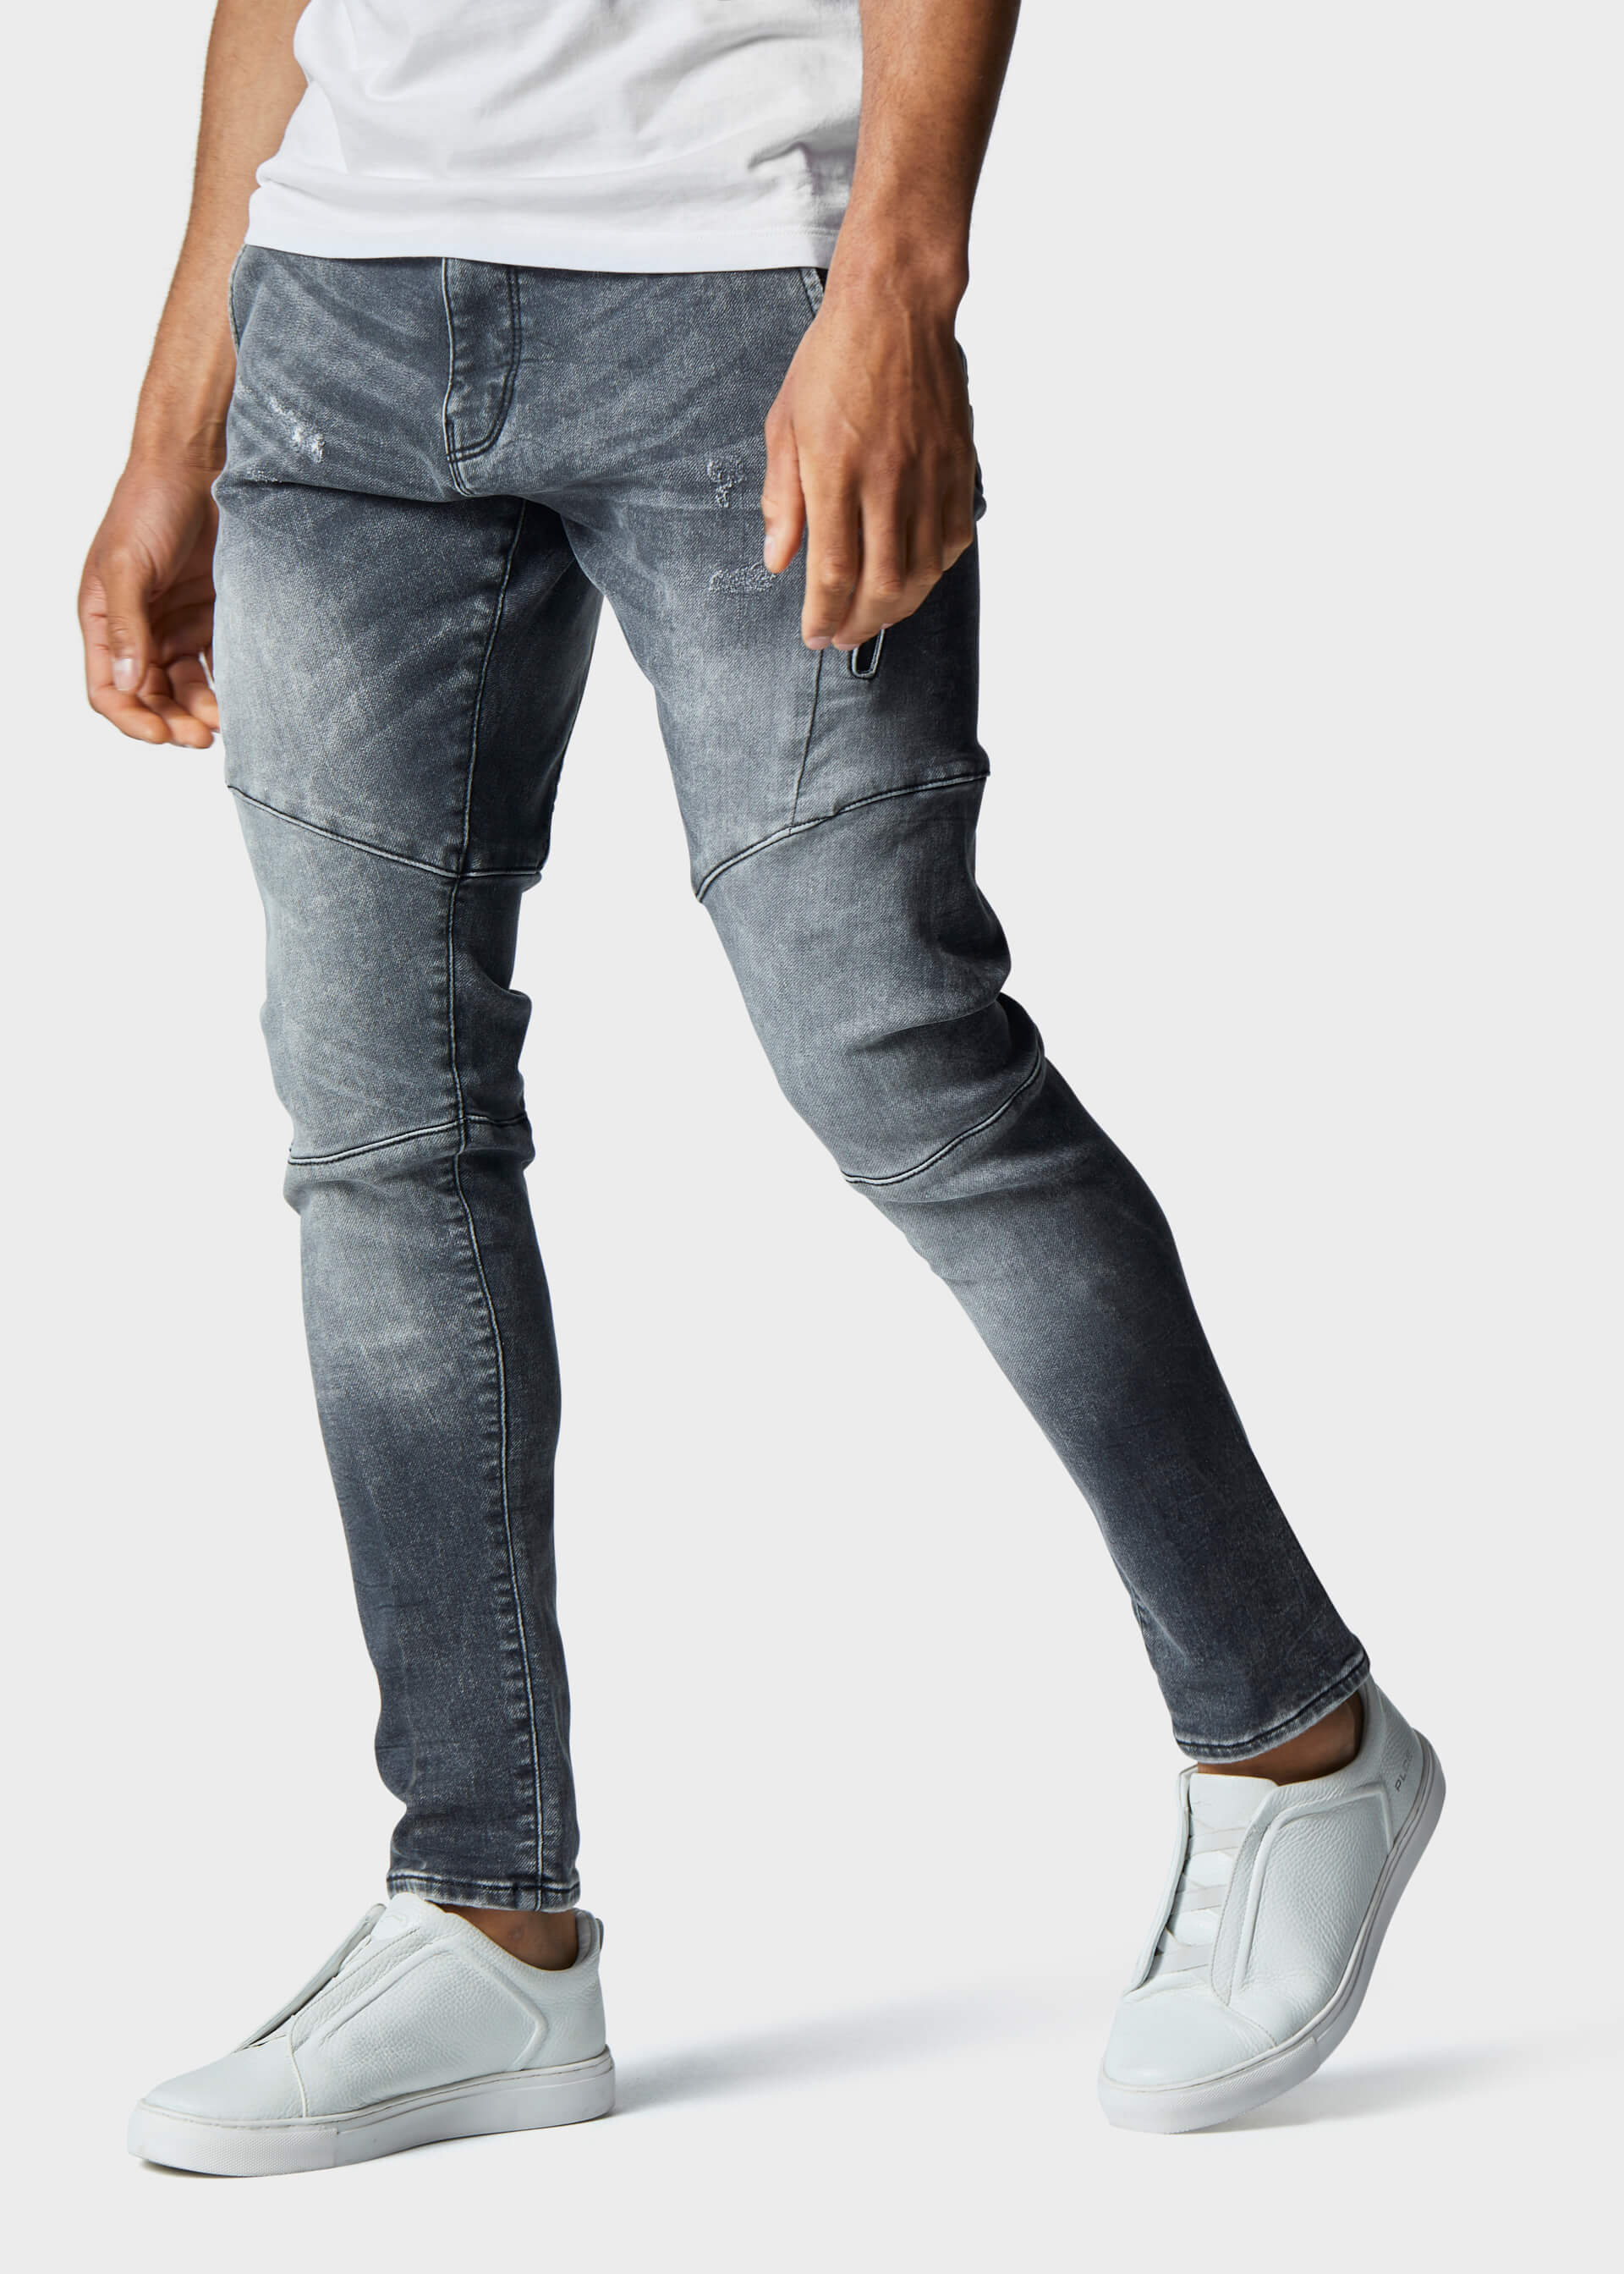 Moriarty ROG 615 Slim Fit Jeans second_image